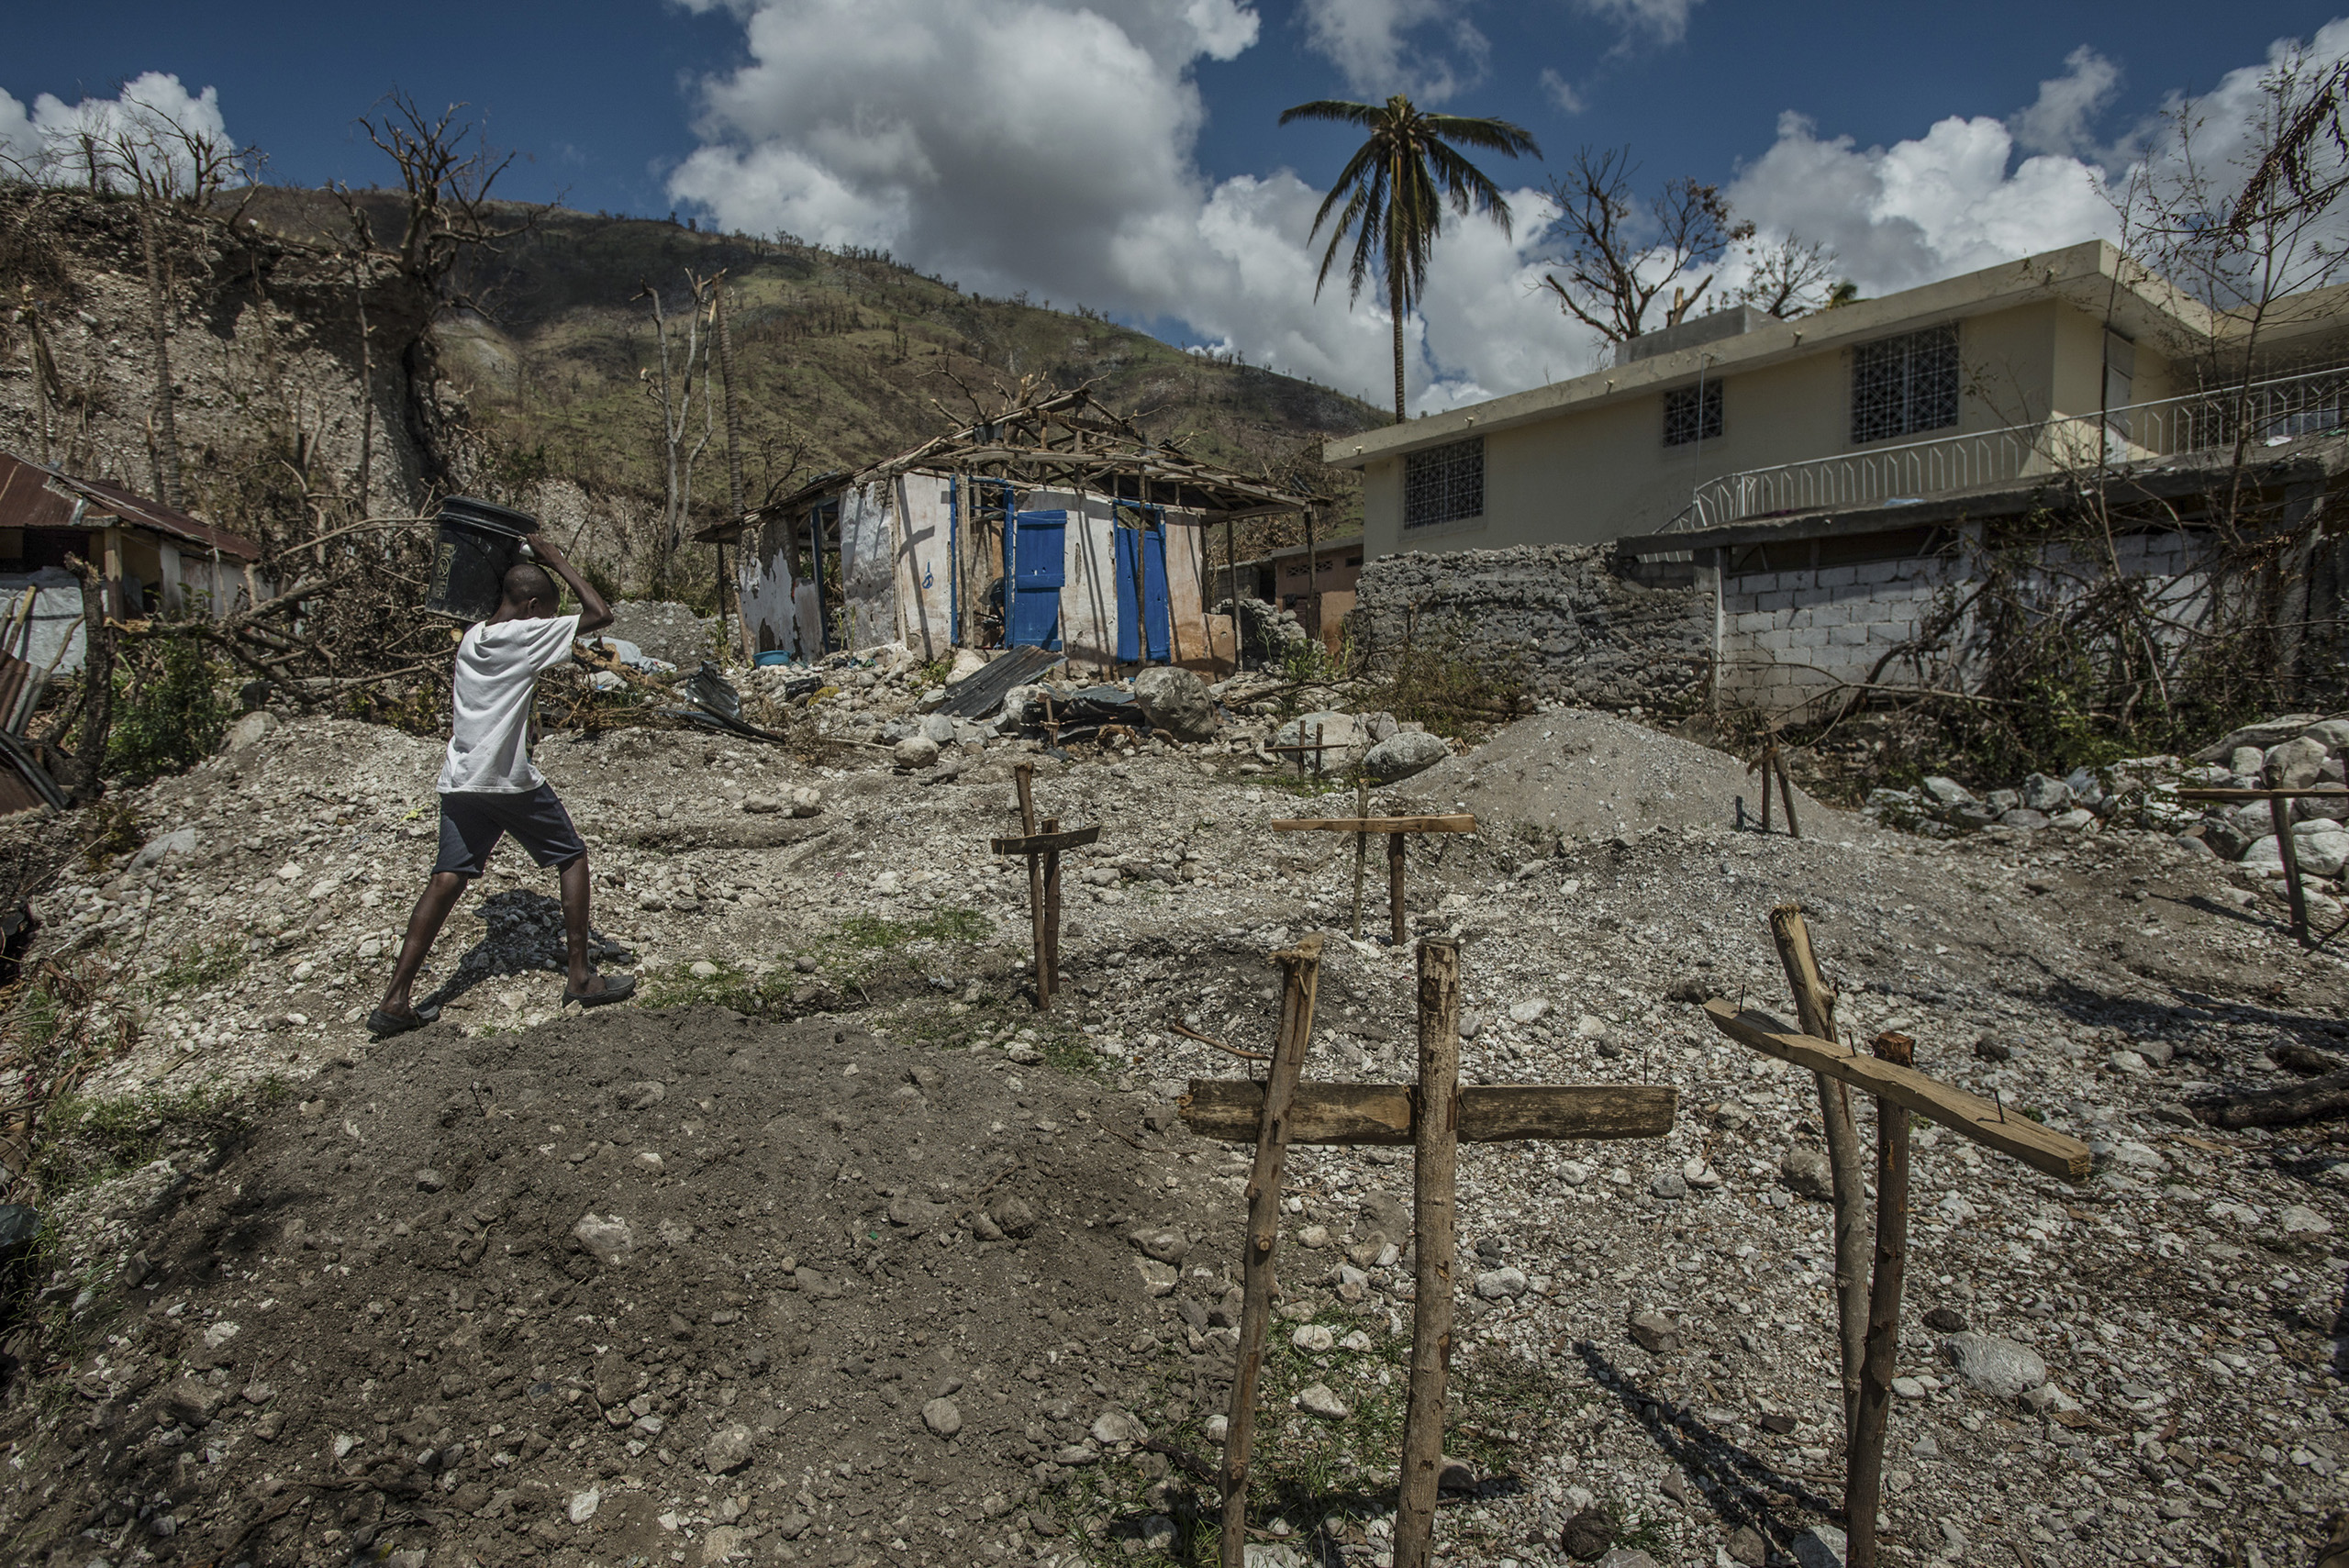 A boy carries river water to what remains of his family's home, destroyed by Hurricane Matthew, in Rendel, Haiti, on Oct. 12, 2016.